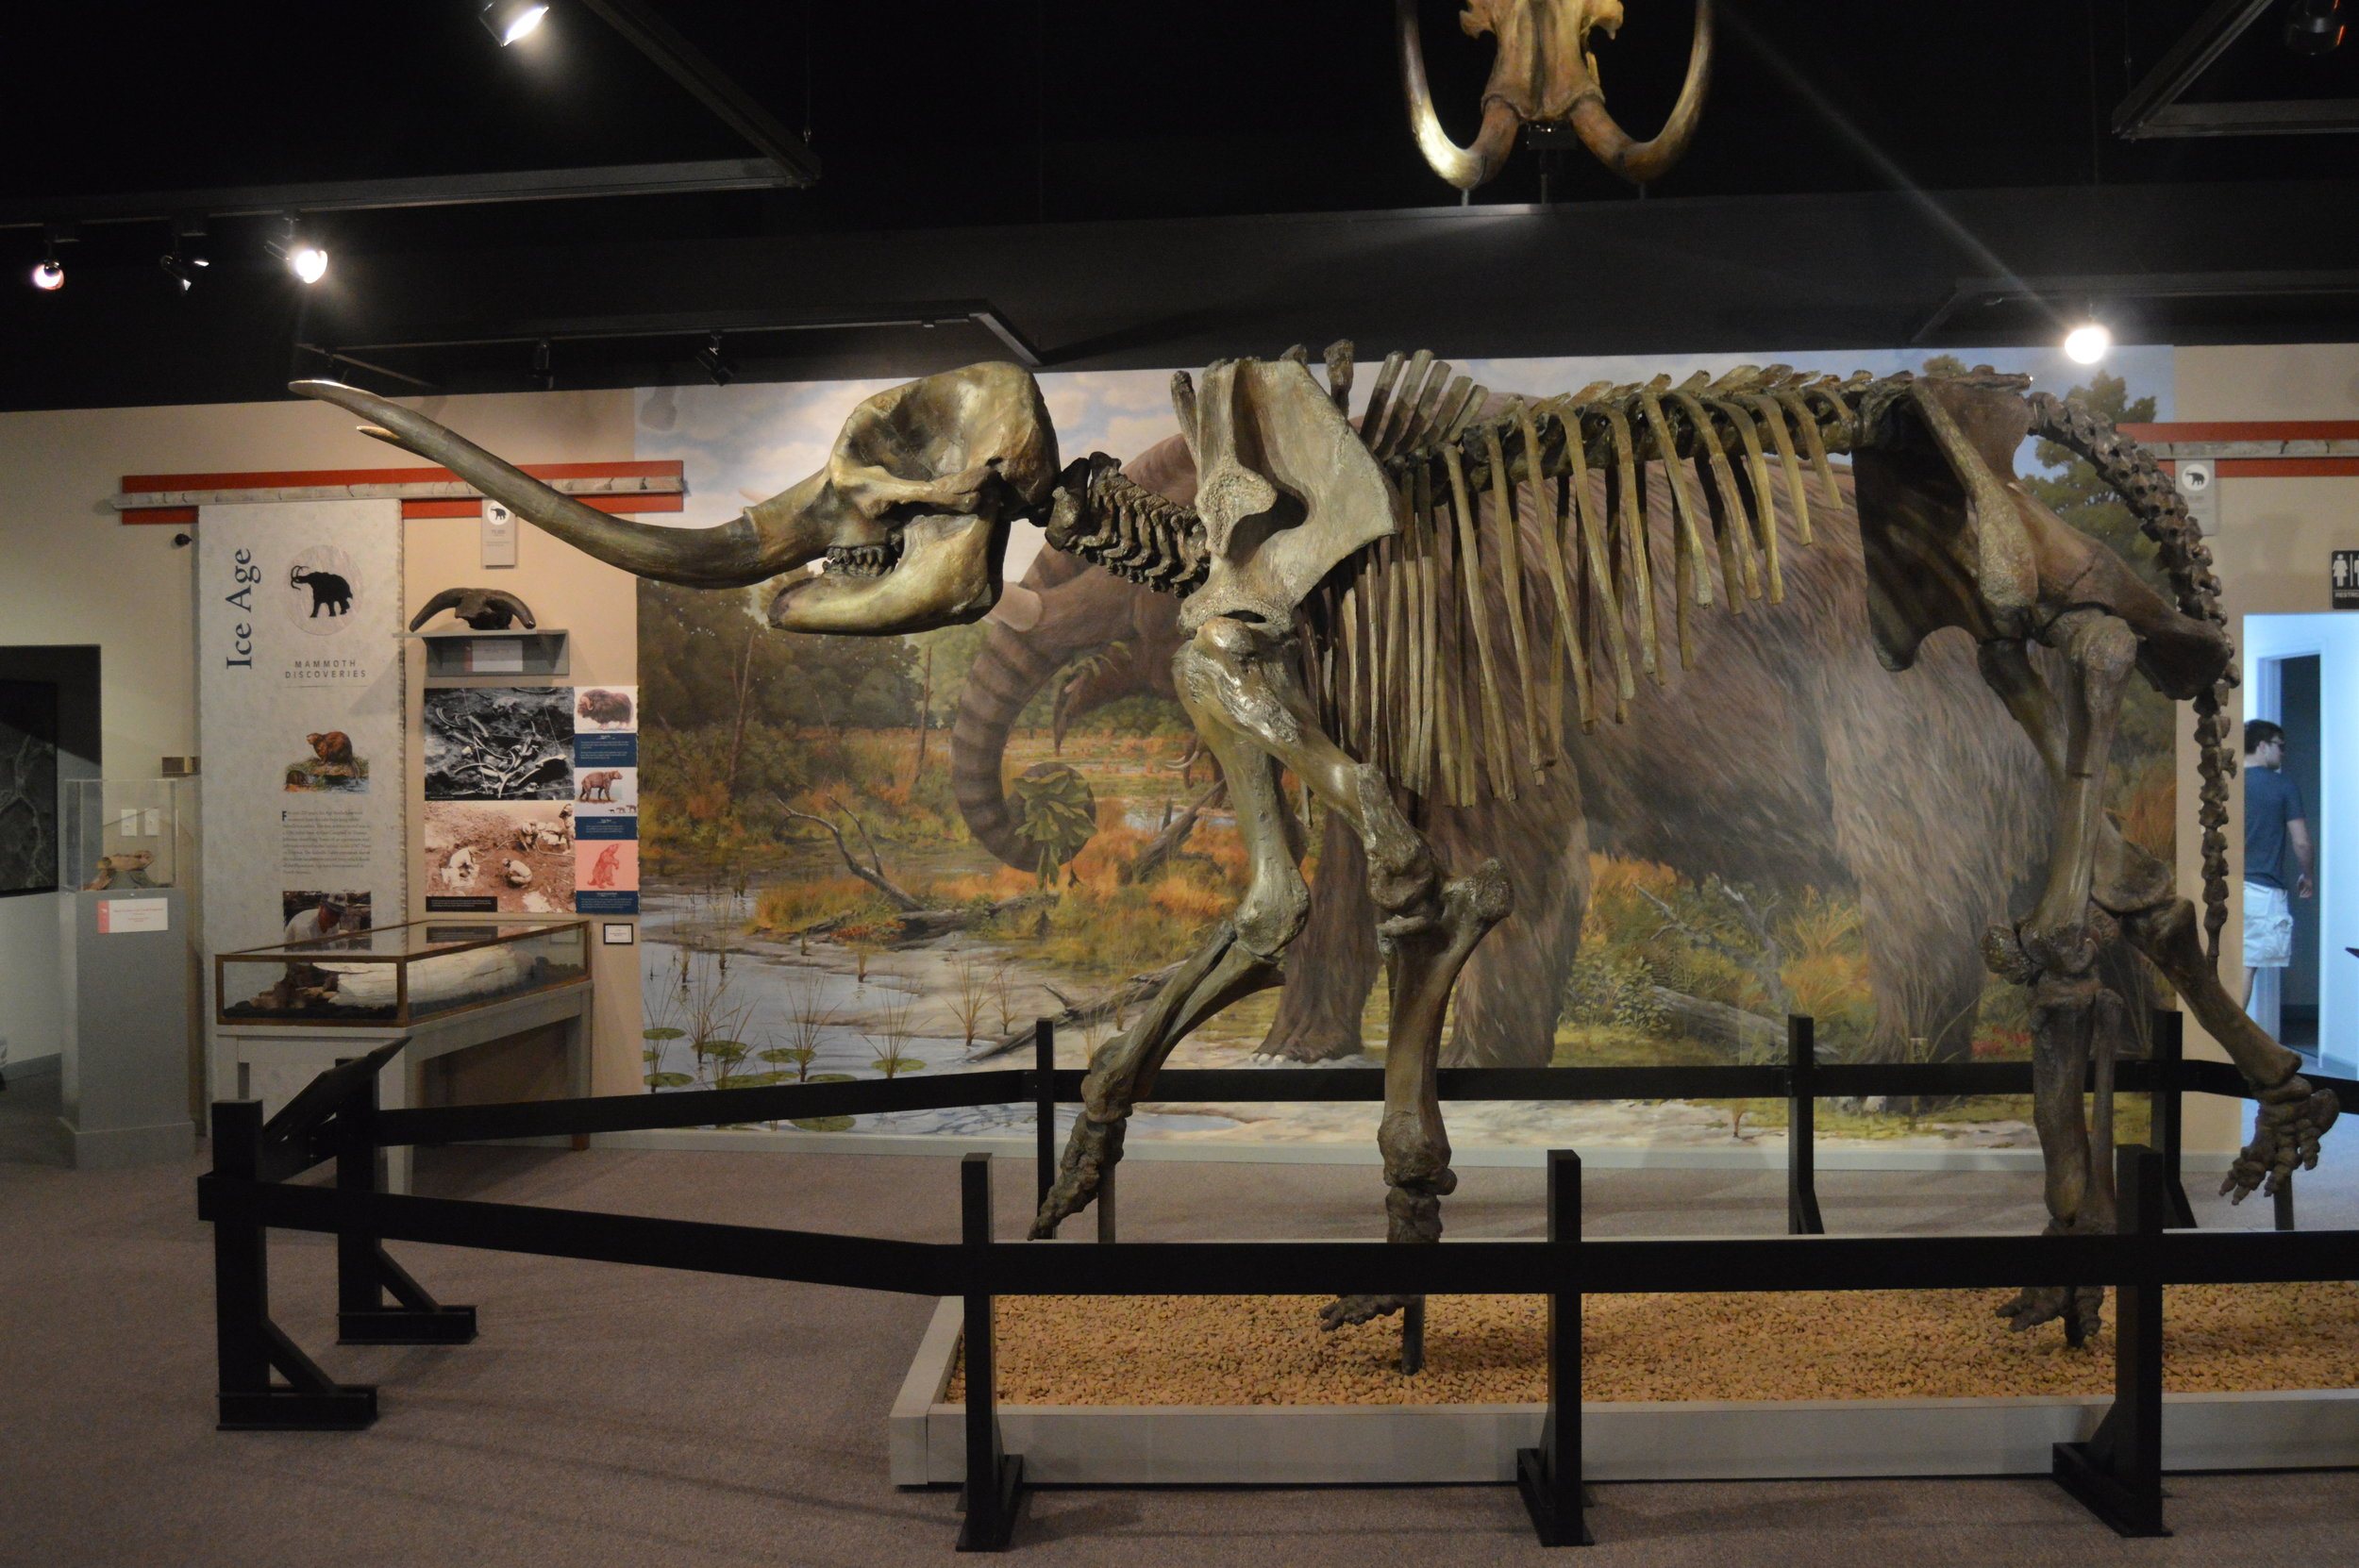 The Museum of the Middle Appalachians traces the regions history from the time mastadons and wolly mammoths roamed through the area's salt and gypsum mining era.